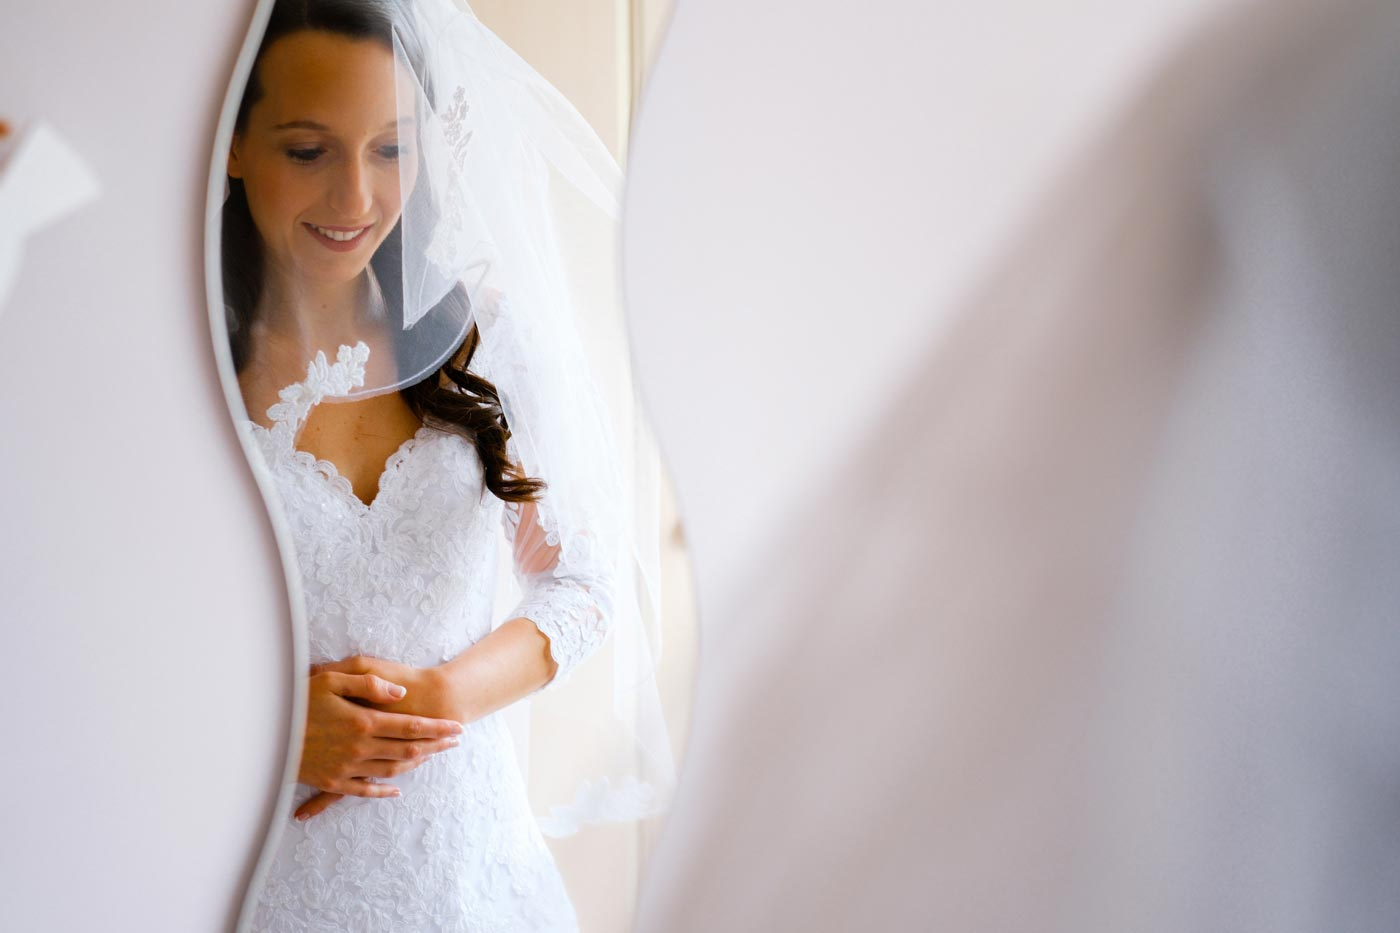 Bride in reflection in mirror as she gets ready in the morning